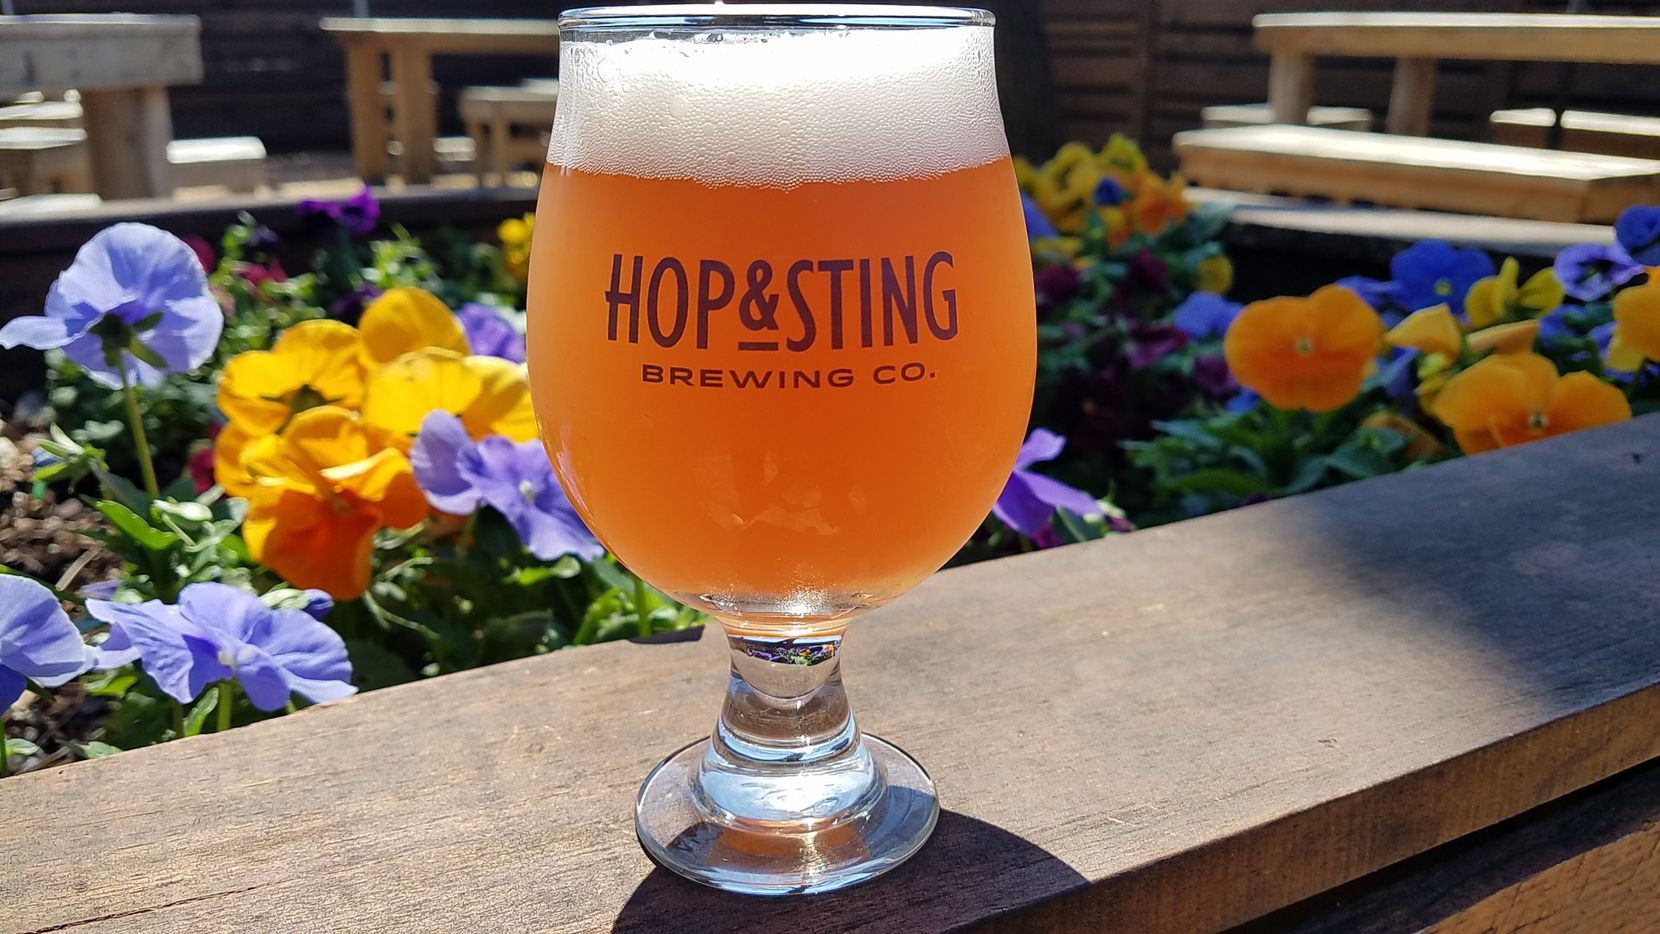 Hop & Sting Brewing Co. in Grapevine, Texas, wants GameStop employees to stop in for a cheap beer.